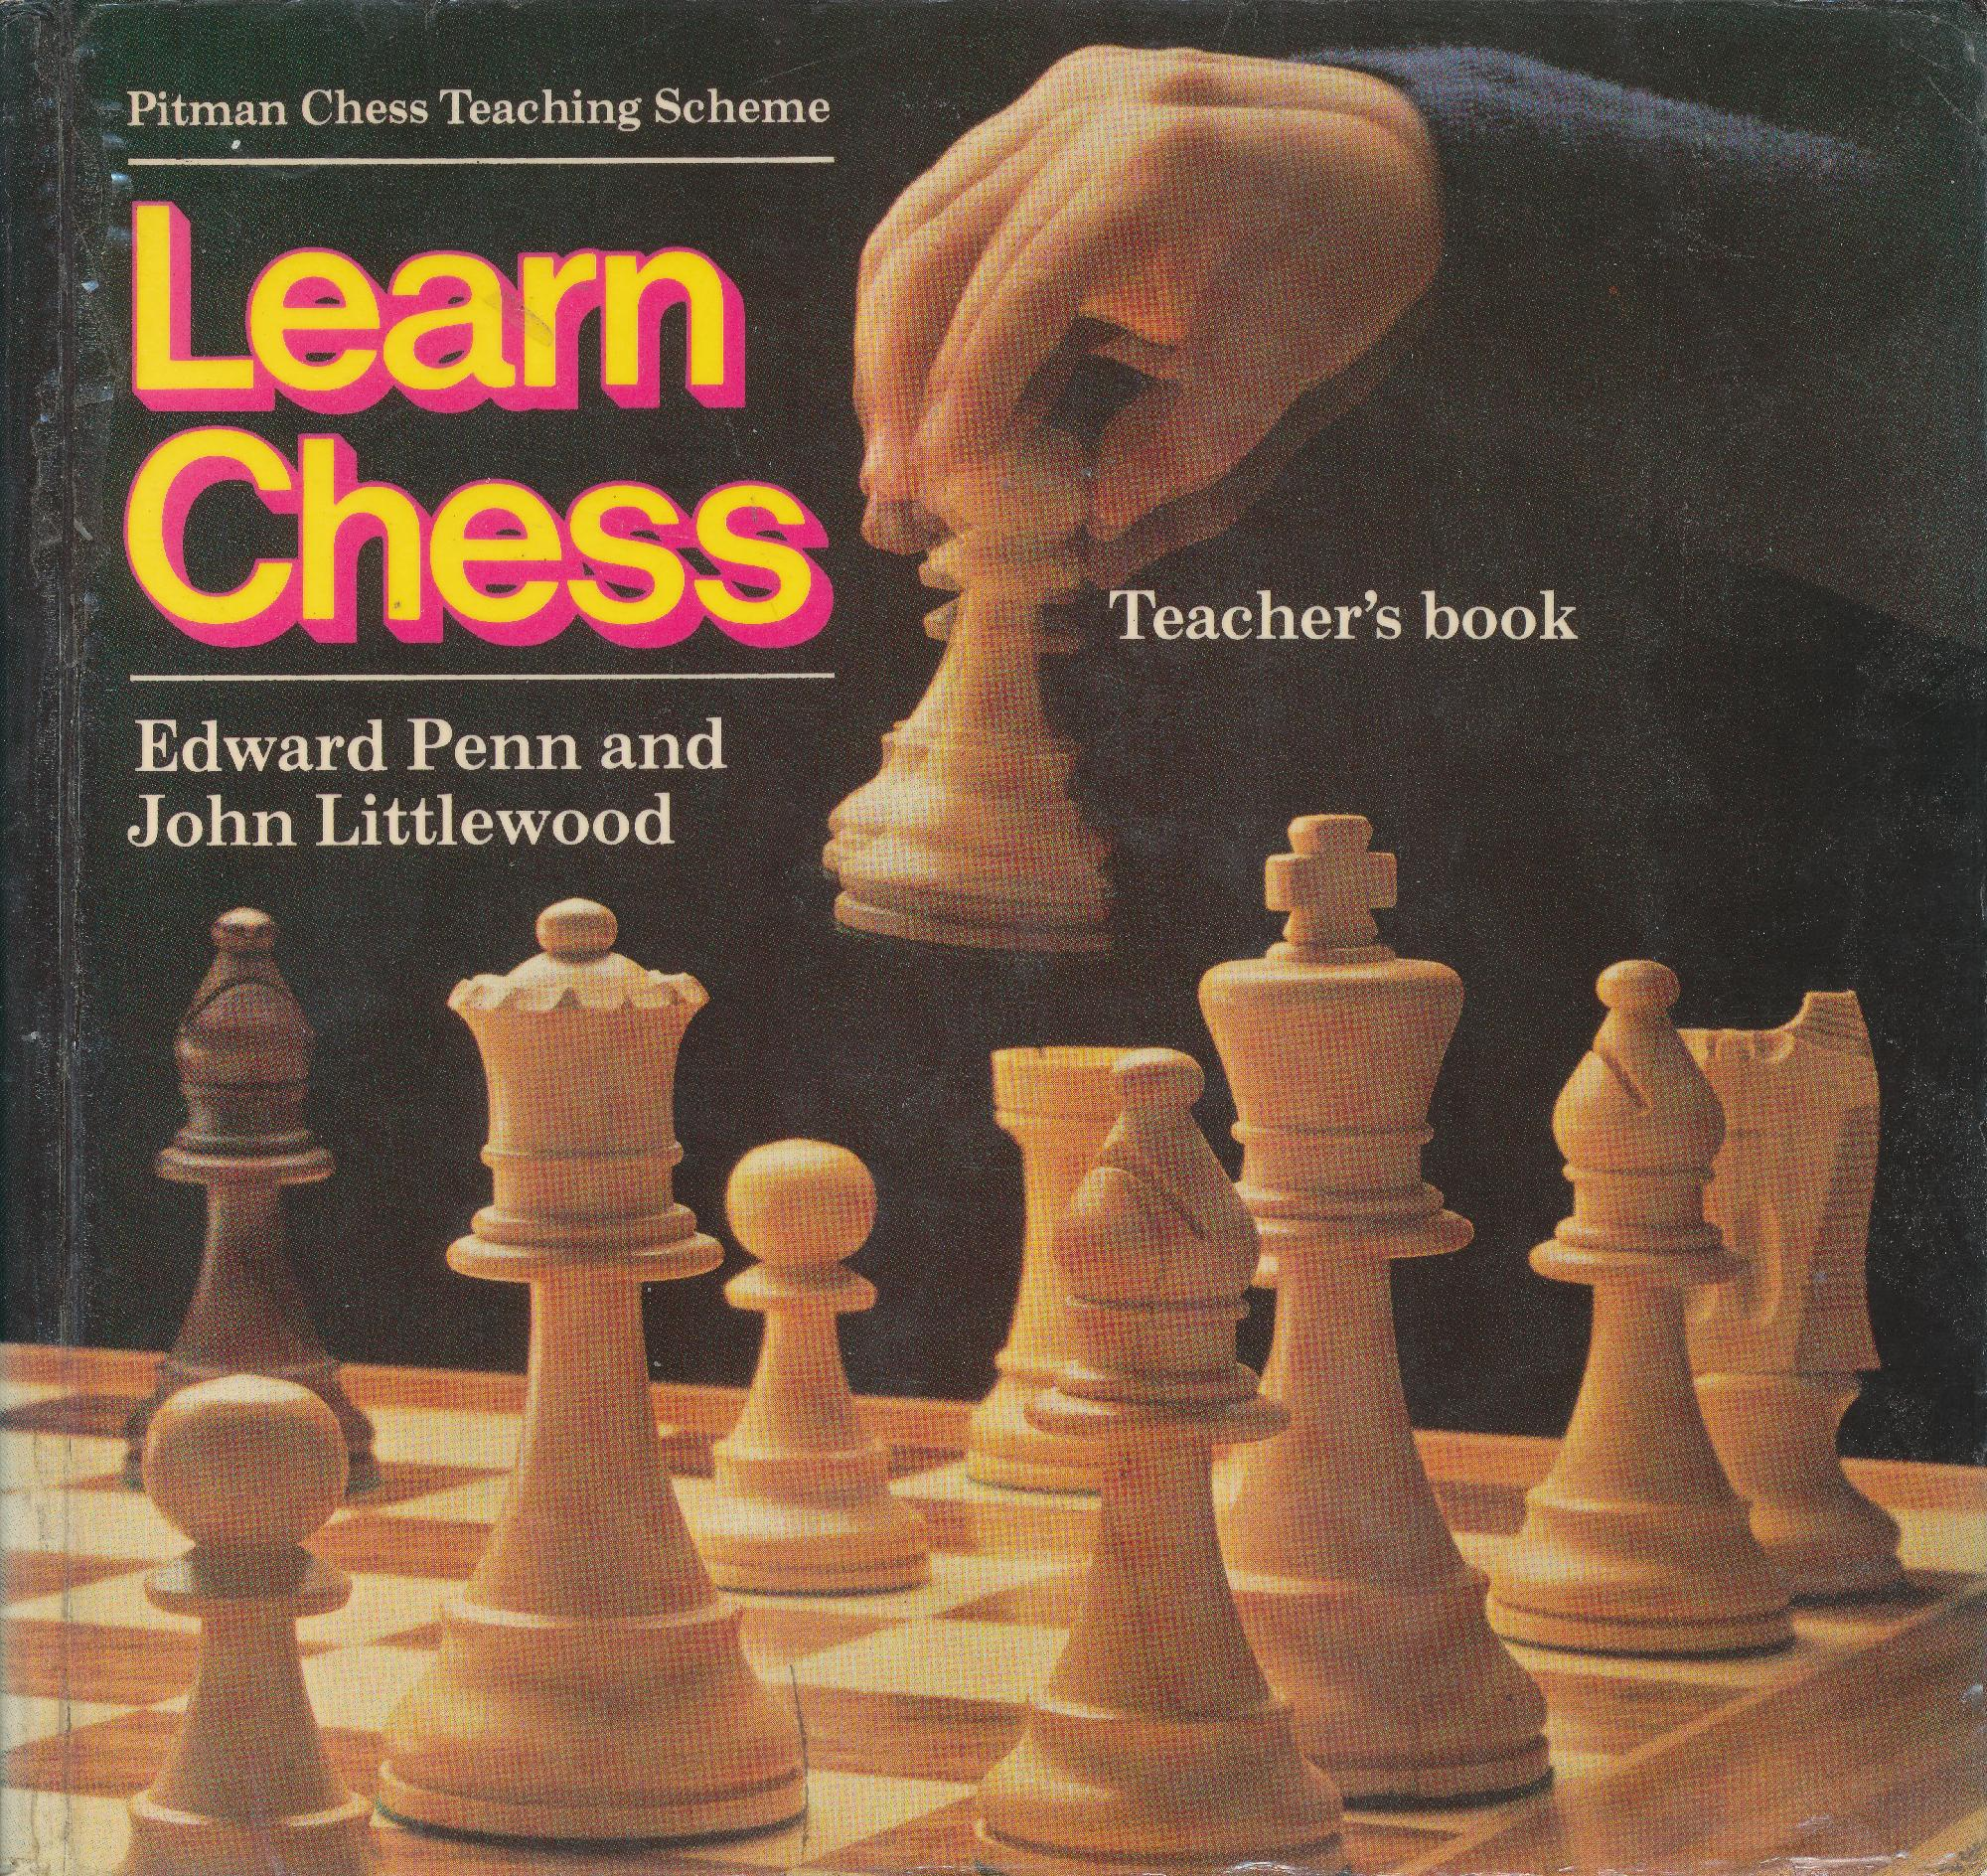 Learn Chess : Teacher's Book,  by Edward Penn & John Littlewood, Pitman House, 1980